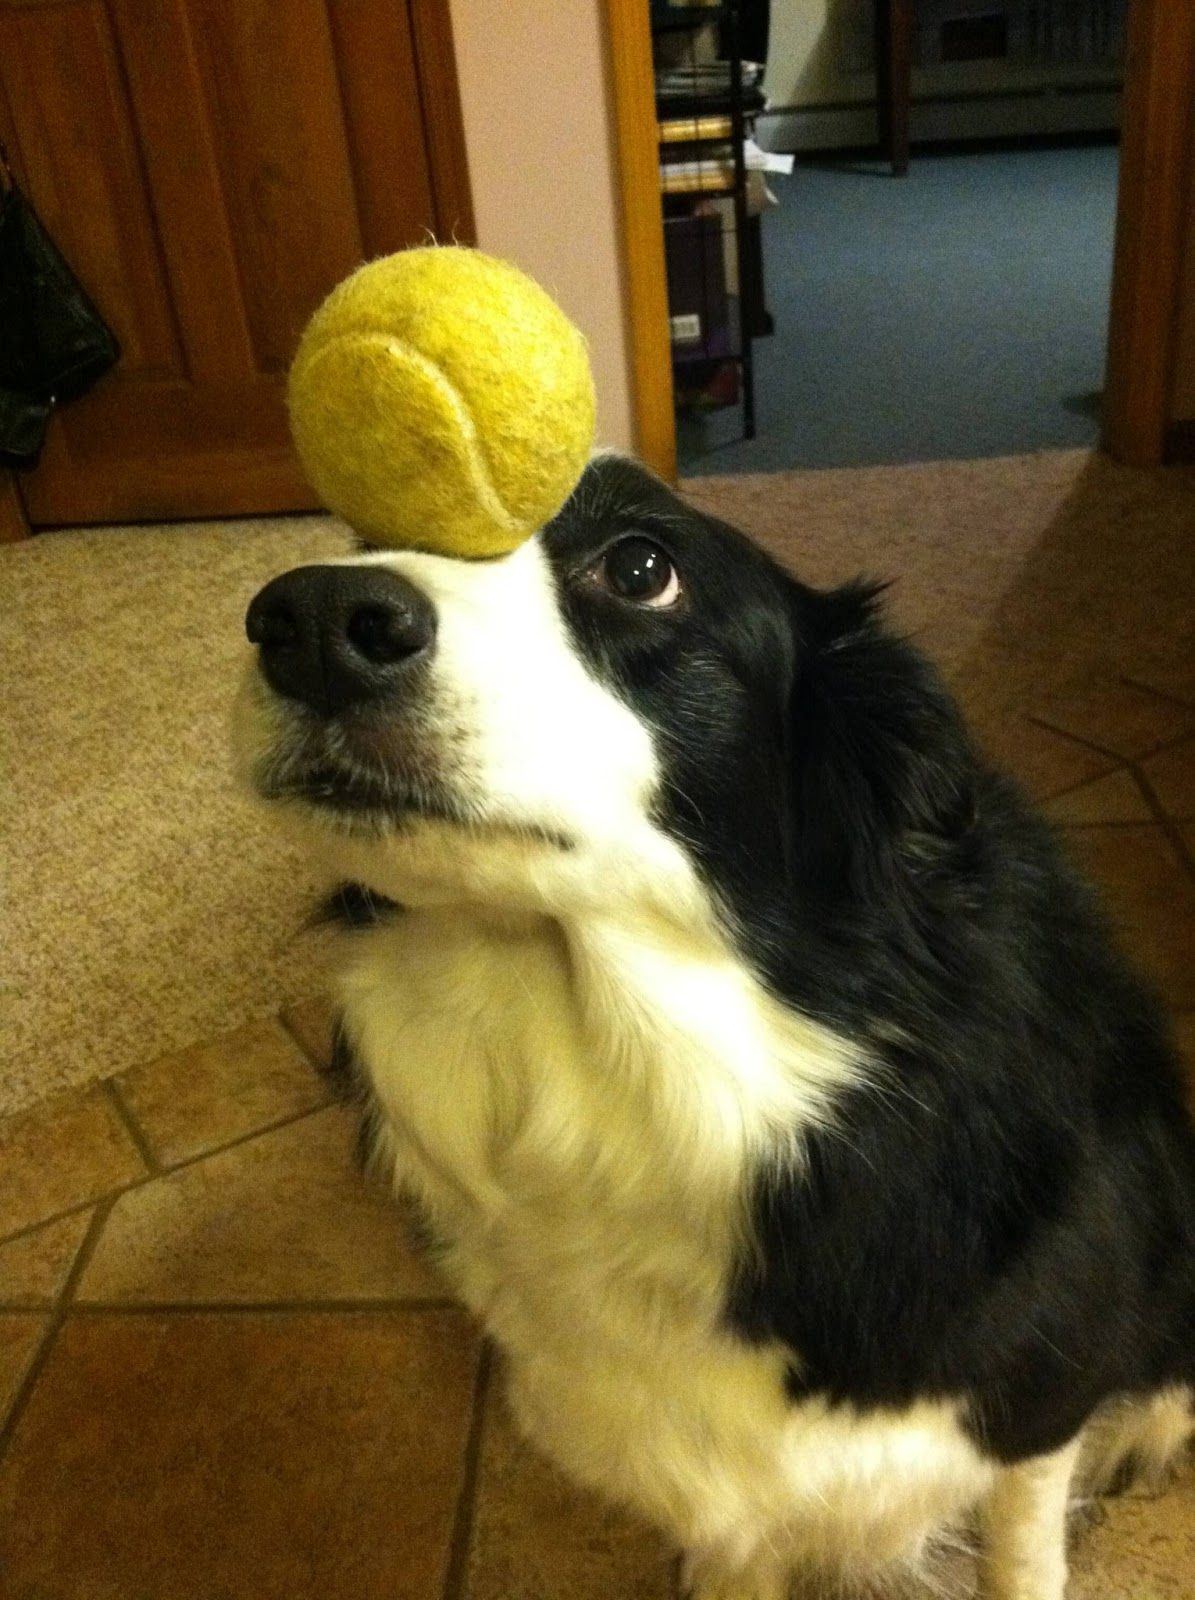 Zelda the border collie balancing things on her head, dog balancing things on its head, funny dog pictures